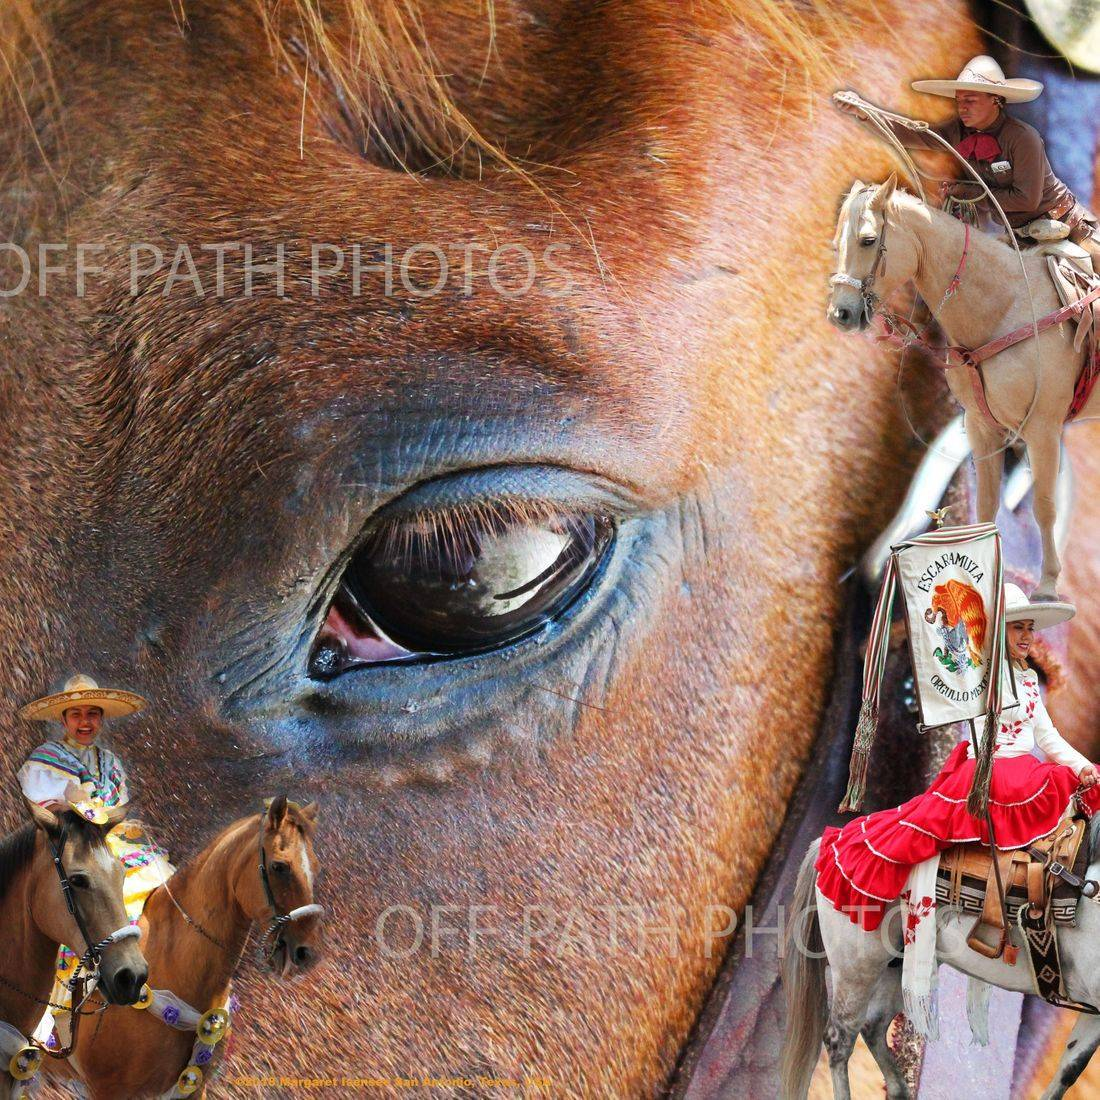 photography, rodeo, horses, animals, rope tricks, equestrian, fiesta, dreams, festival